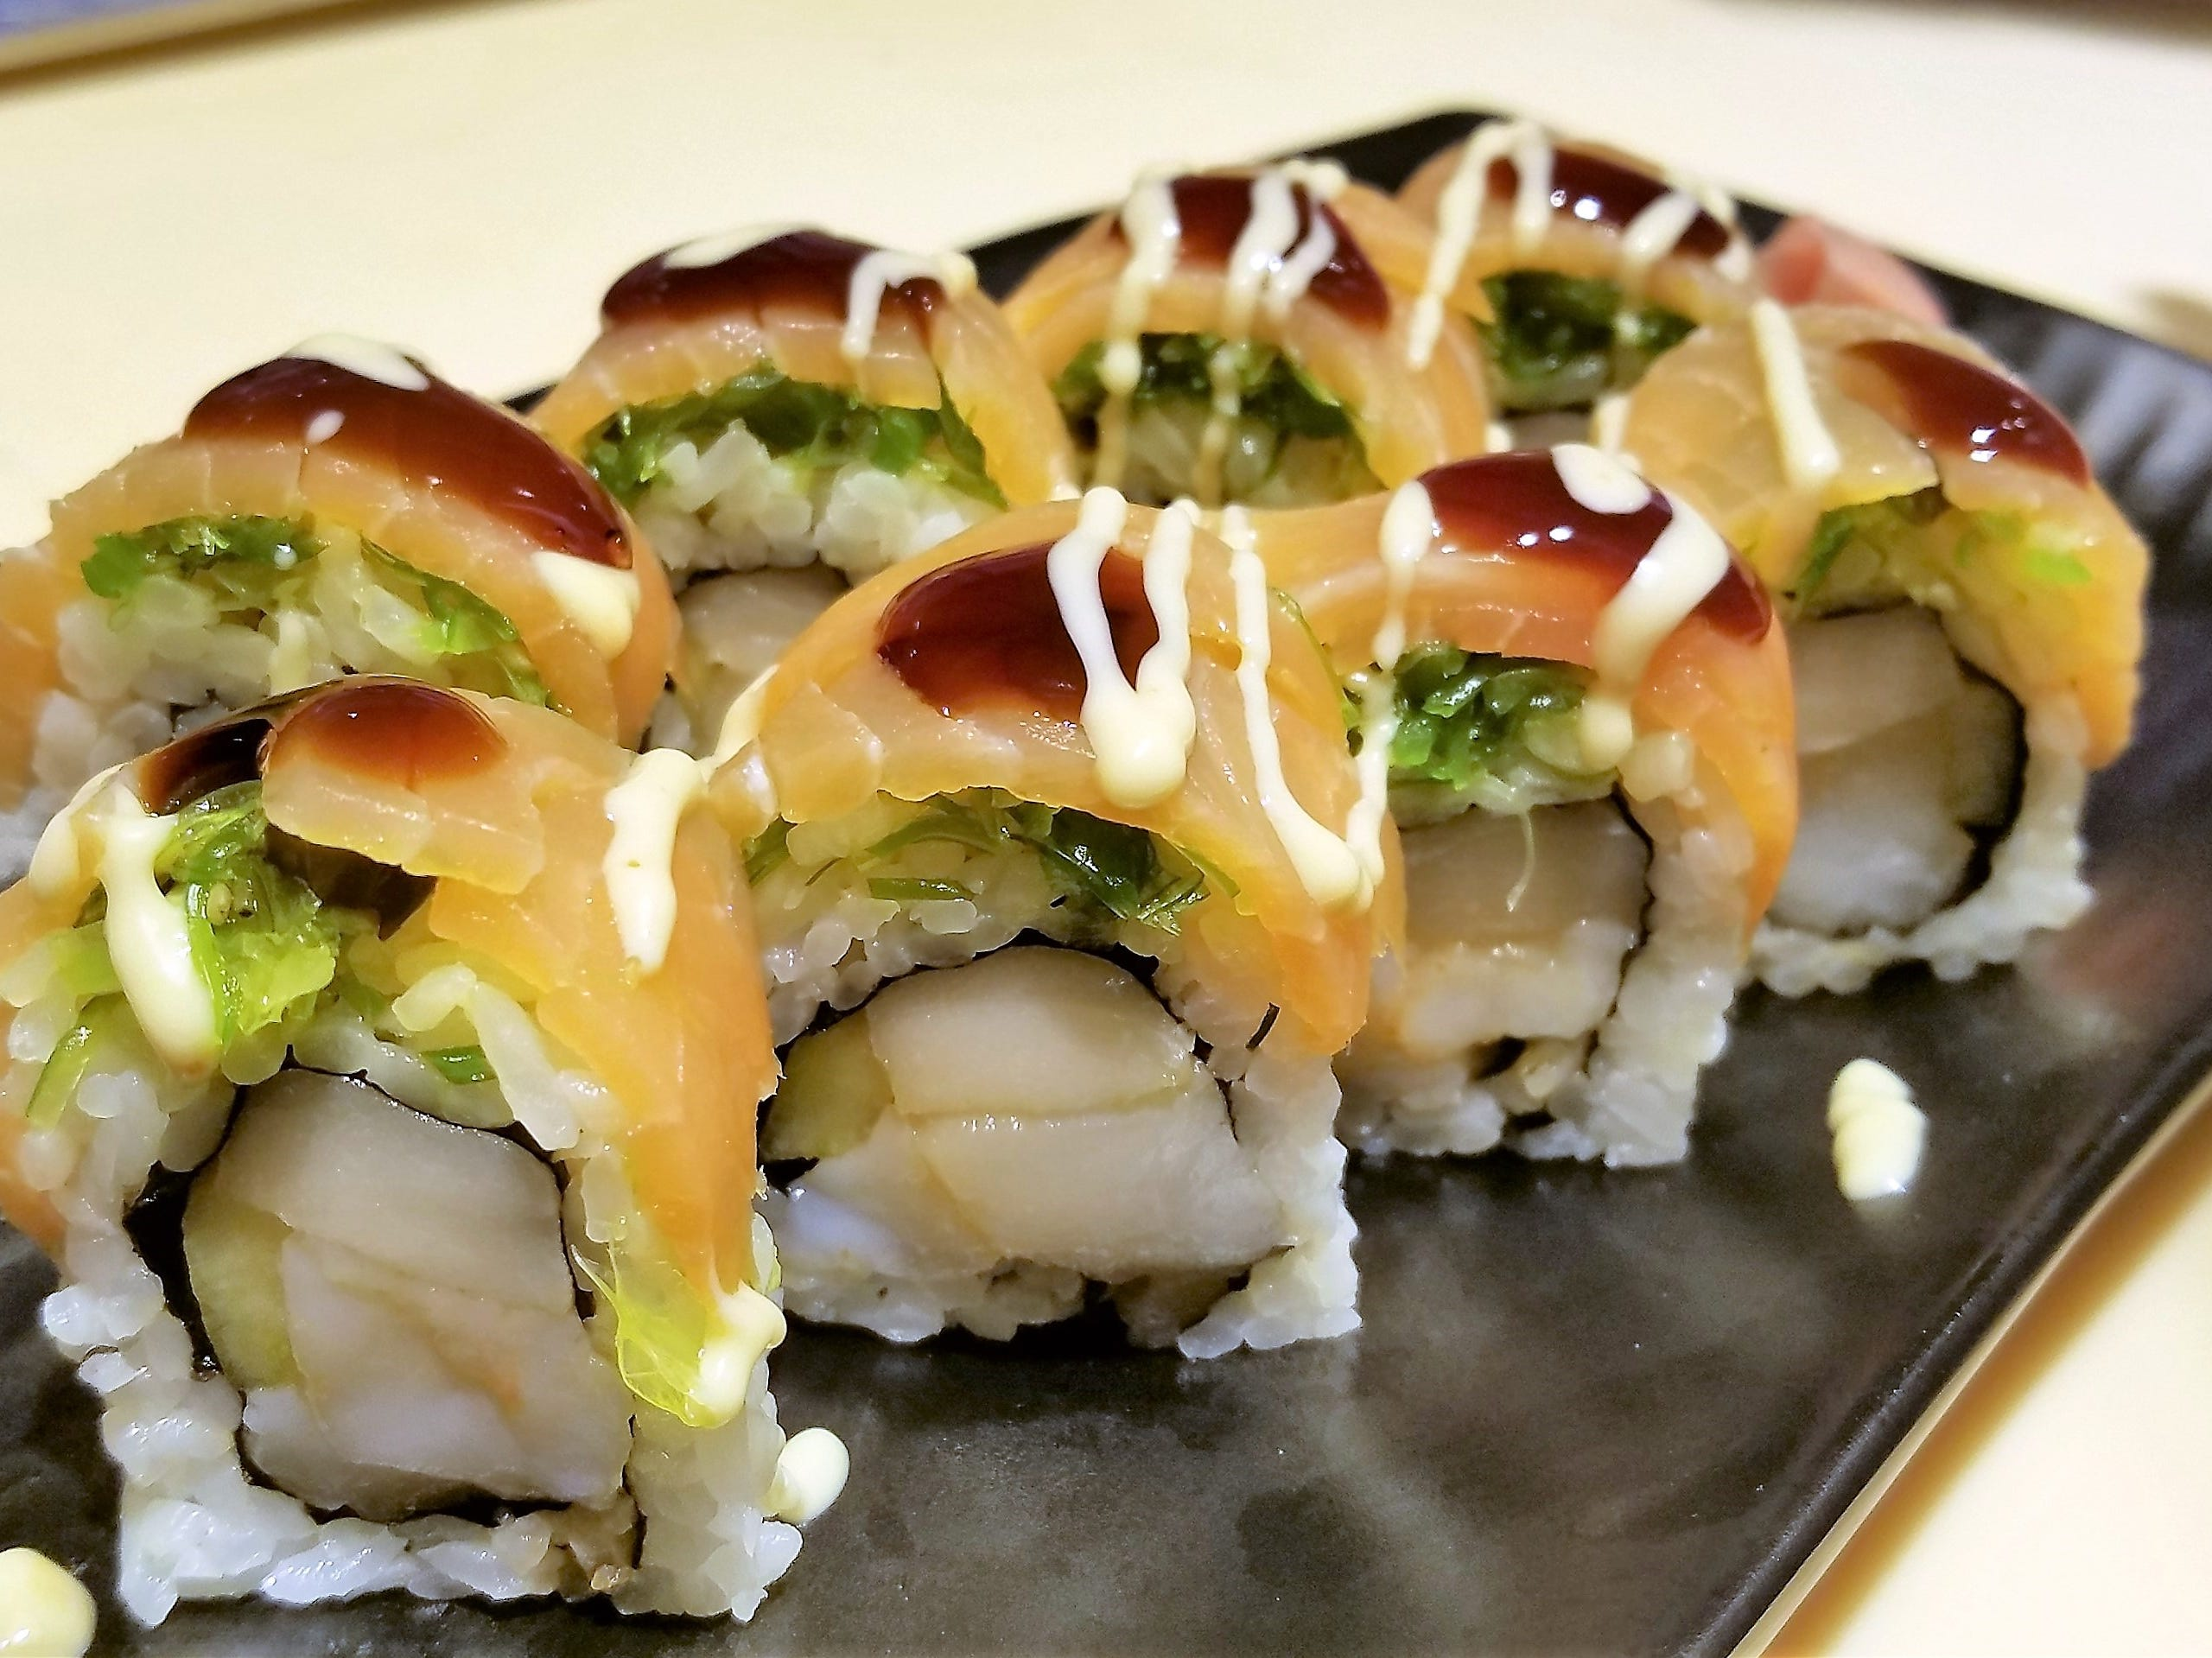 The hiyashi maki roll at Domo Sushi Bar and Ramen House, made with spicy scallops, albacore tuna and cucumber, topped with smoked salmon, seaweed salad, mayonnaise sauce and sweet soy sauce.